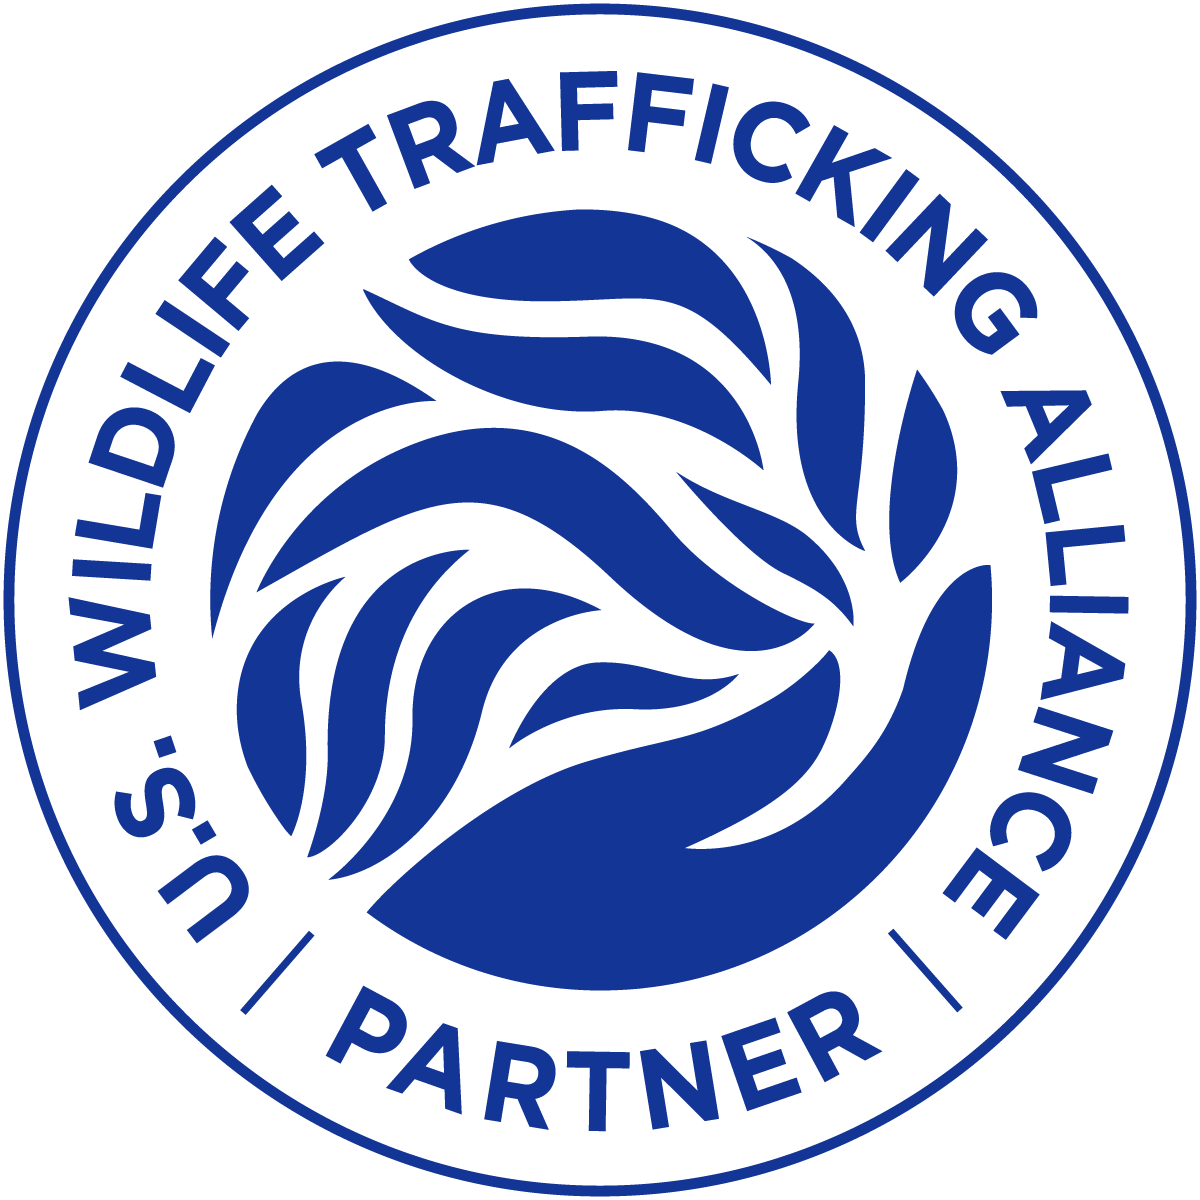 Wildlife Trafficking Alliance